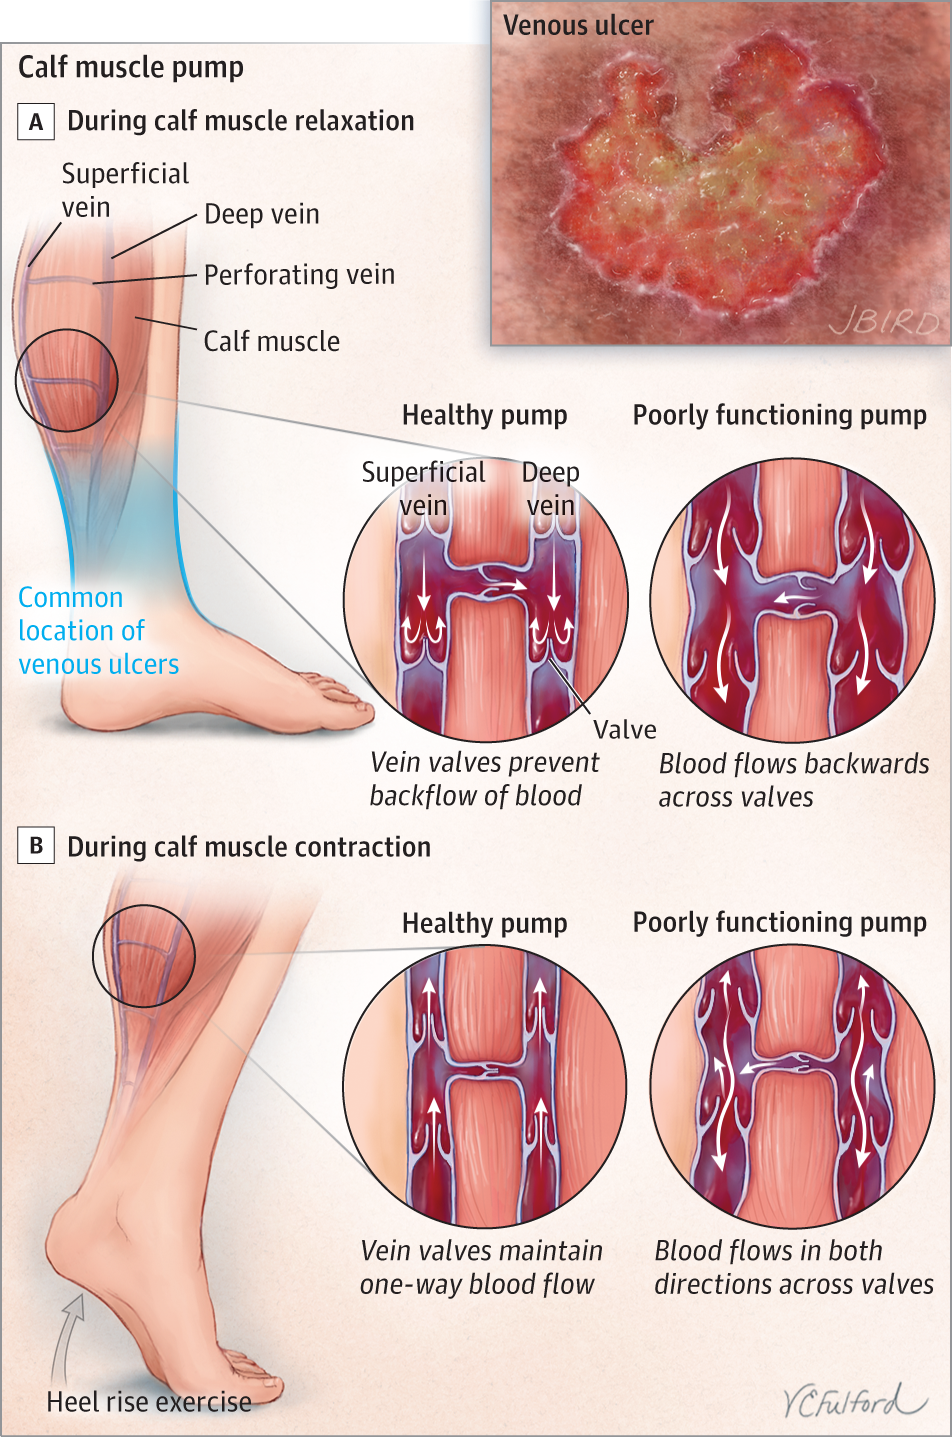 Venous Ulcers. JAMA Dermatol. 2015;151(9):1044. doi:10.1001 ...